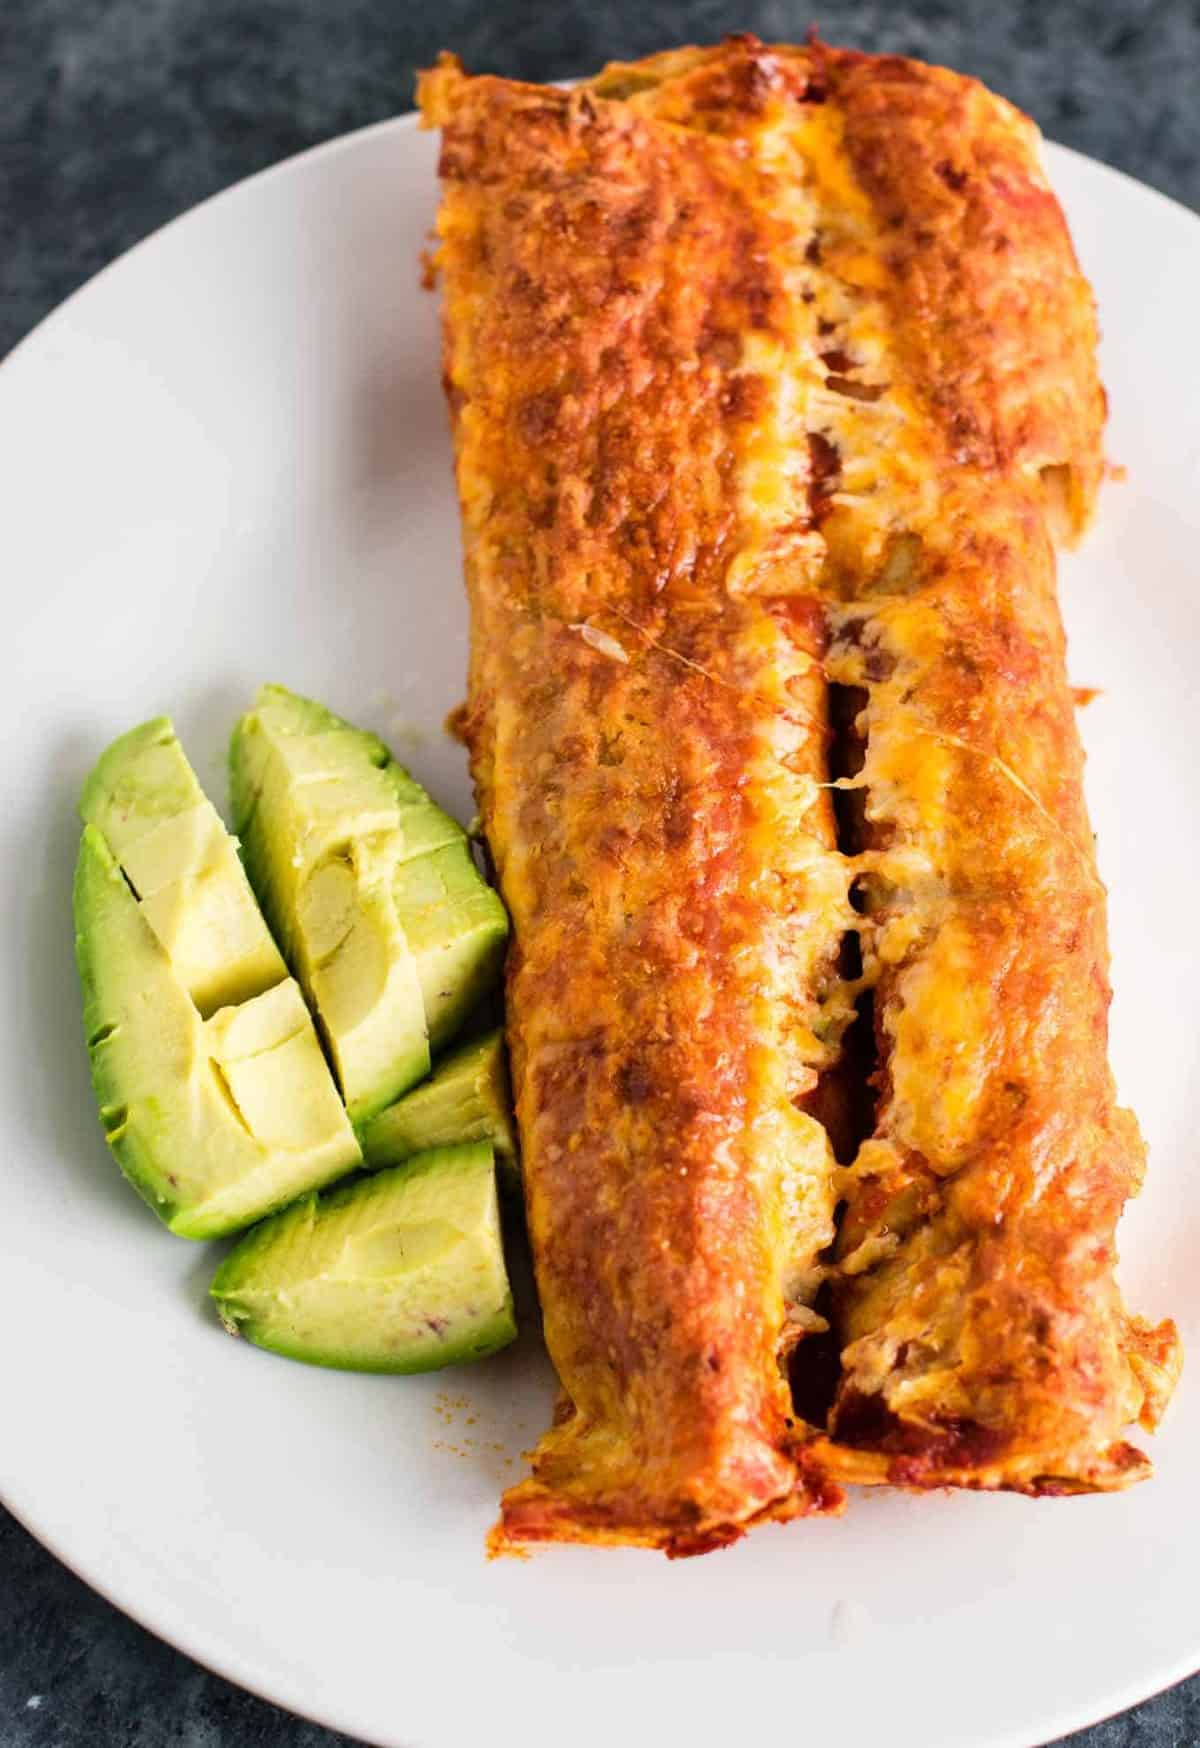 refried bean enchiladas - easy meatless mexican recipe. Made with homemade refried beans and mushrooms.